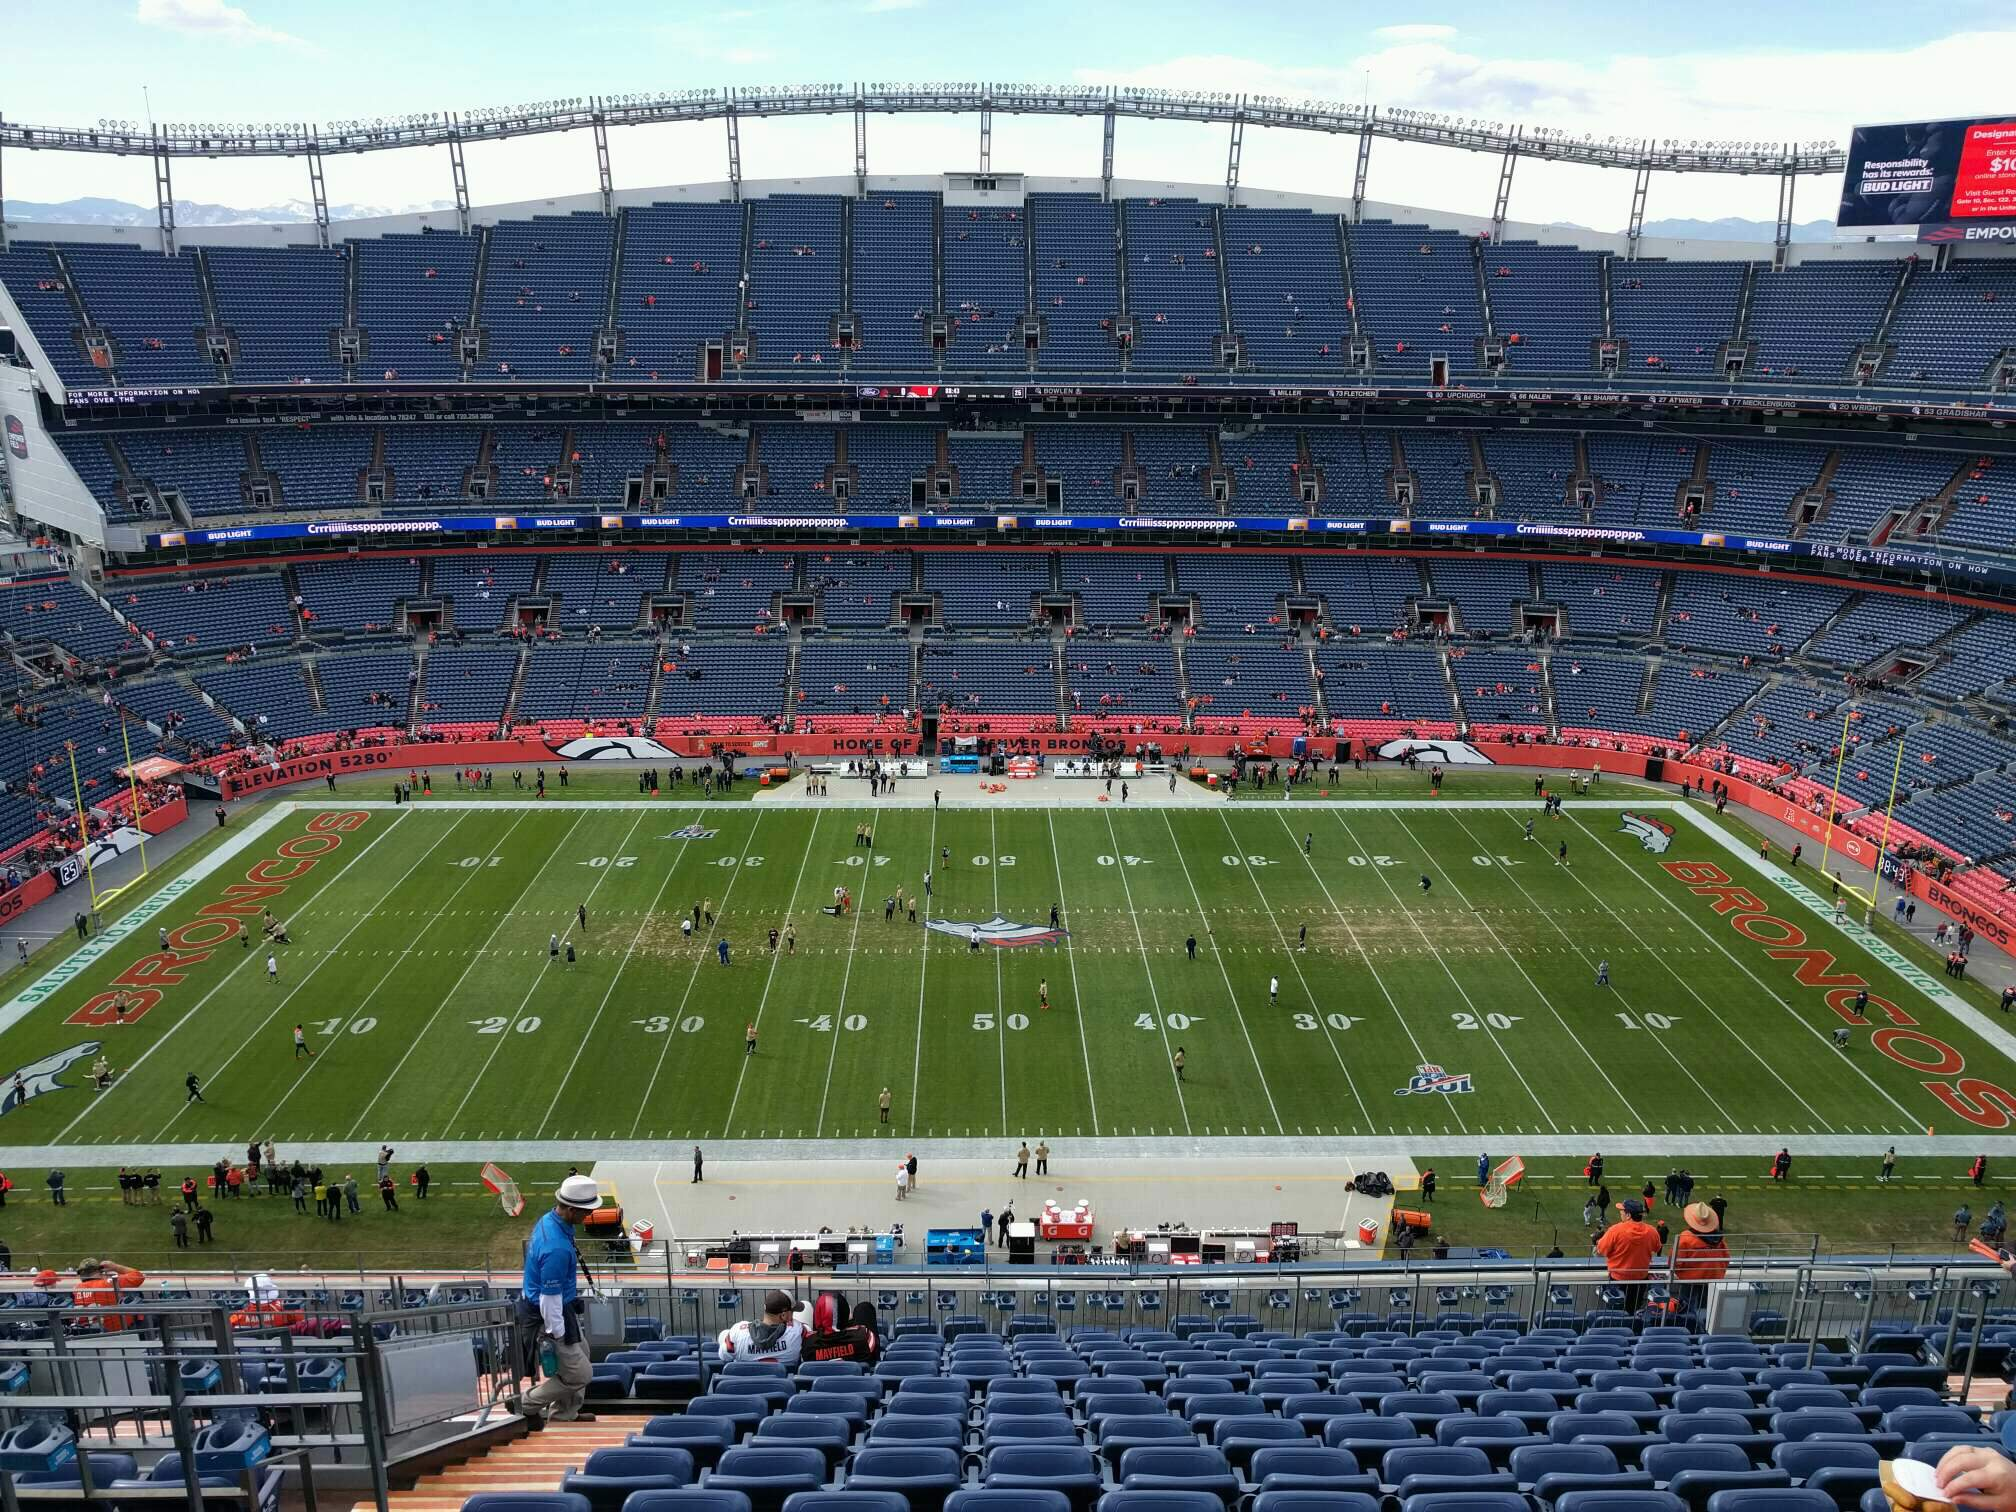 Empower Field at Mile High Stadium Section 534 Row 17 Seat 13